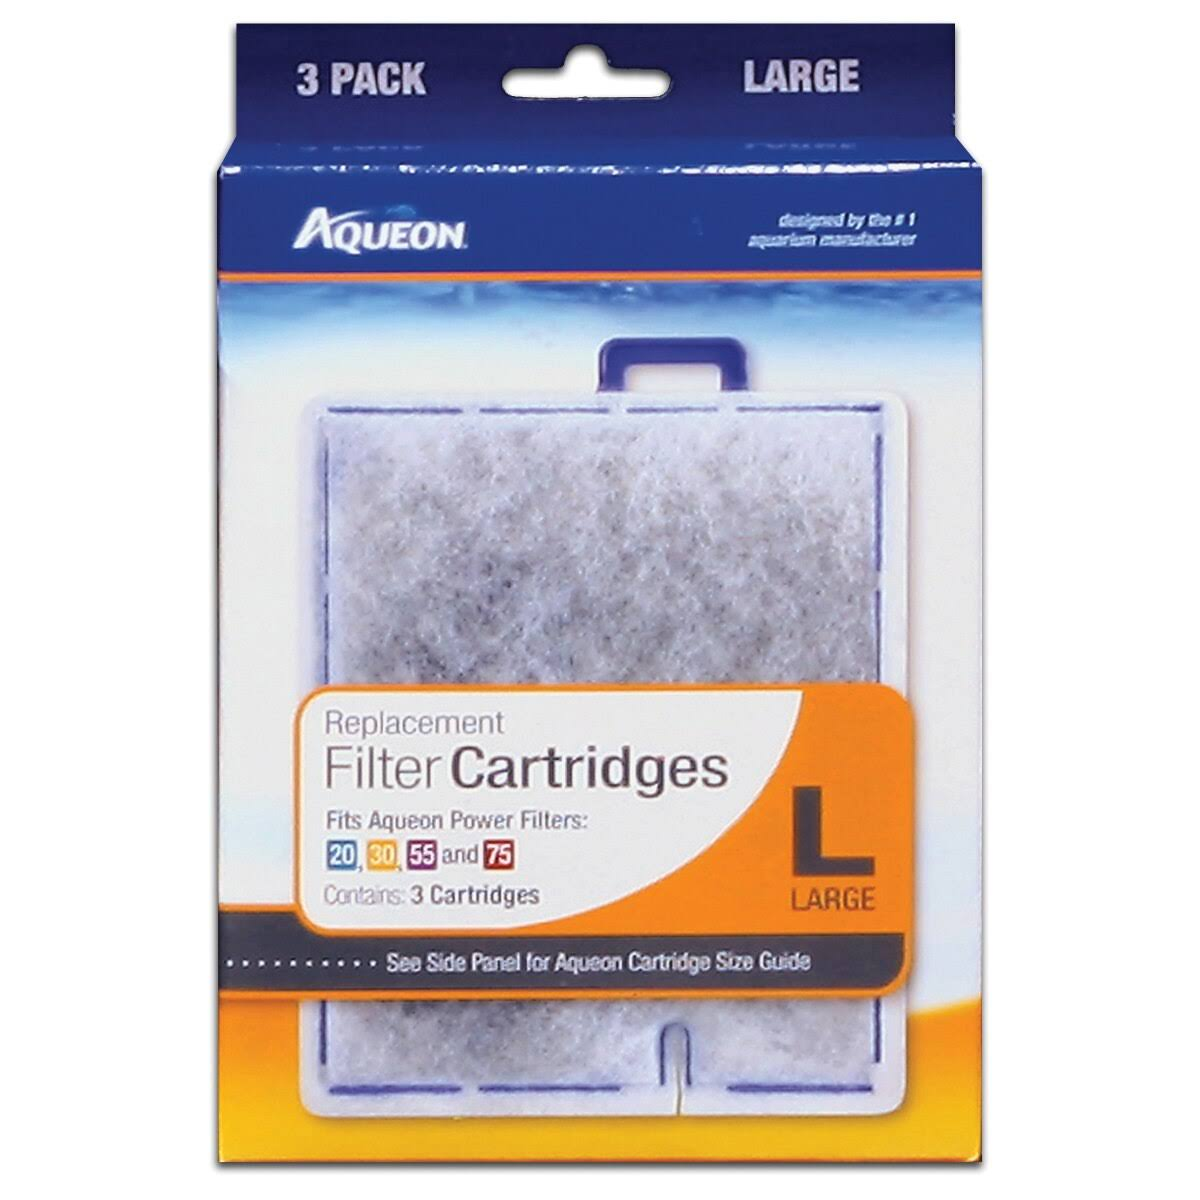 Aqueon Quiet Flow Replacement Filter Cartridges - Large, 3 Pack